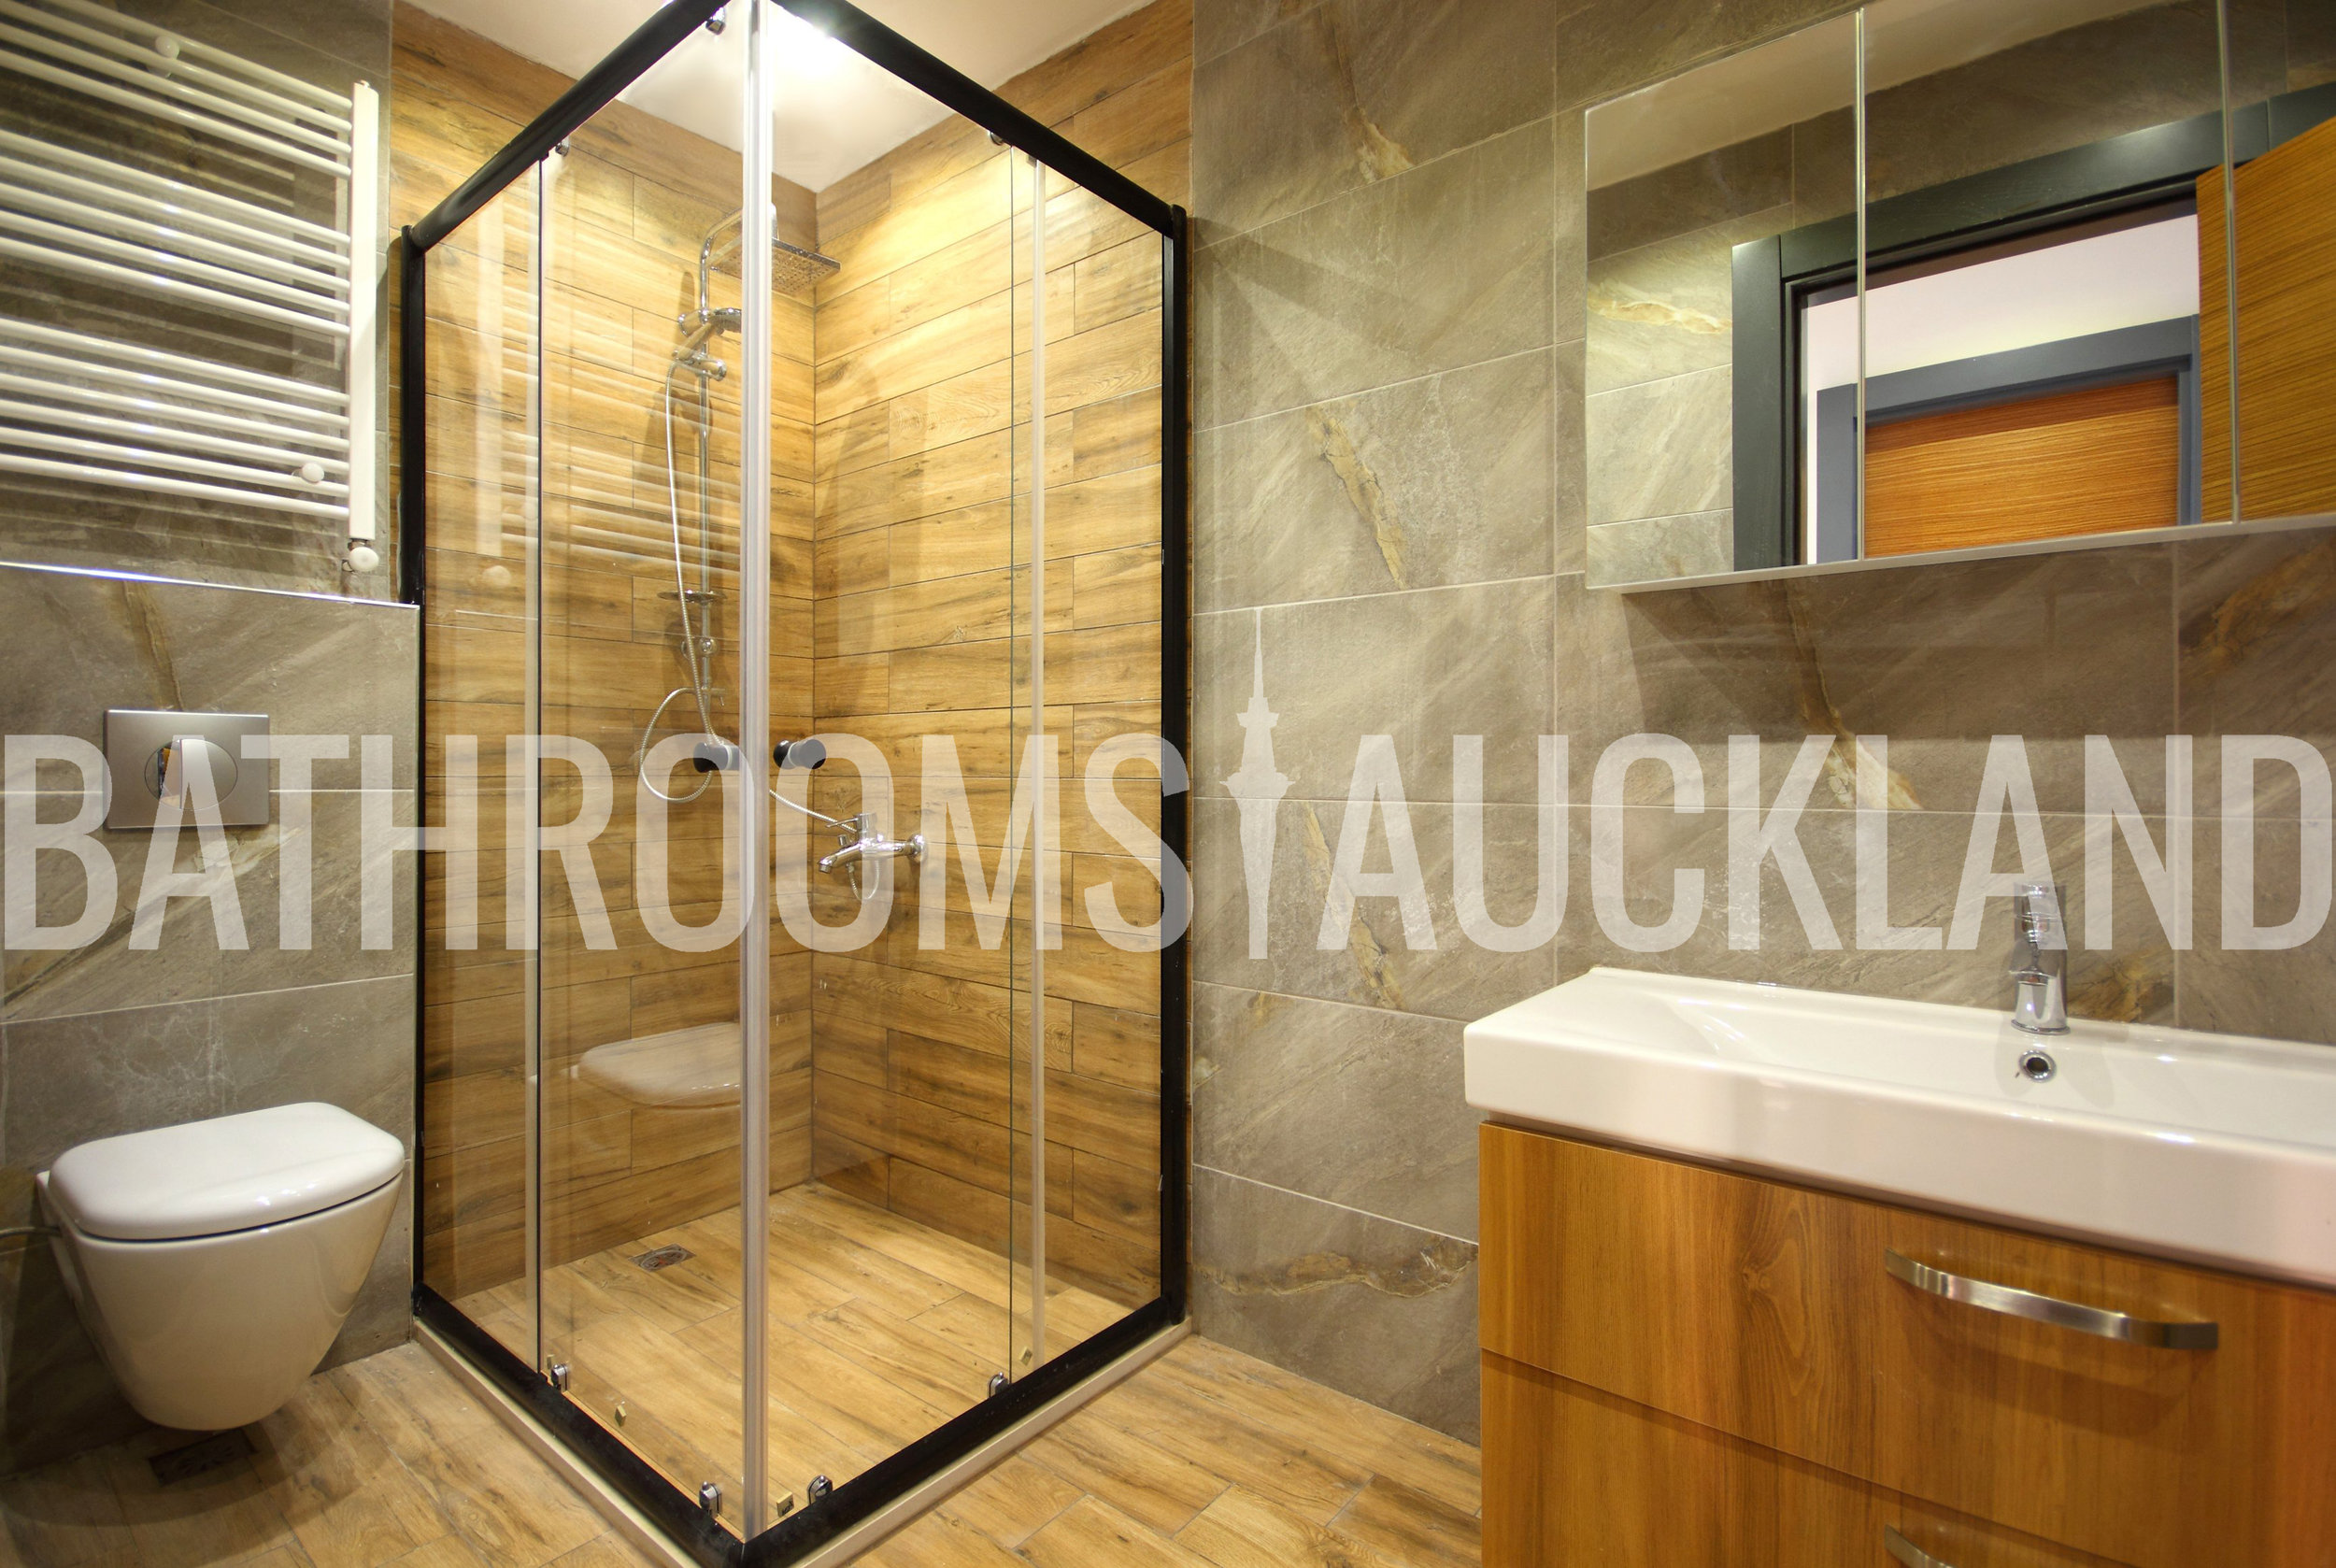 Bathrooms Auckland Renovation_Bathrooms In Auckland_Bathroom Renovation_Bathrooms Renovation_Bathrooms Auckland Renovation .1226.jpg